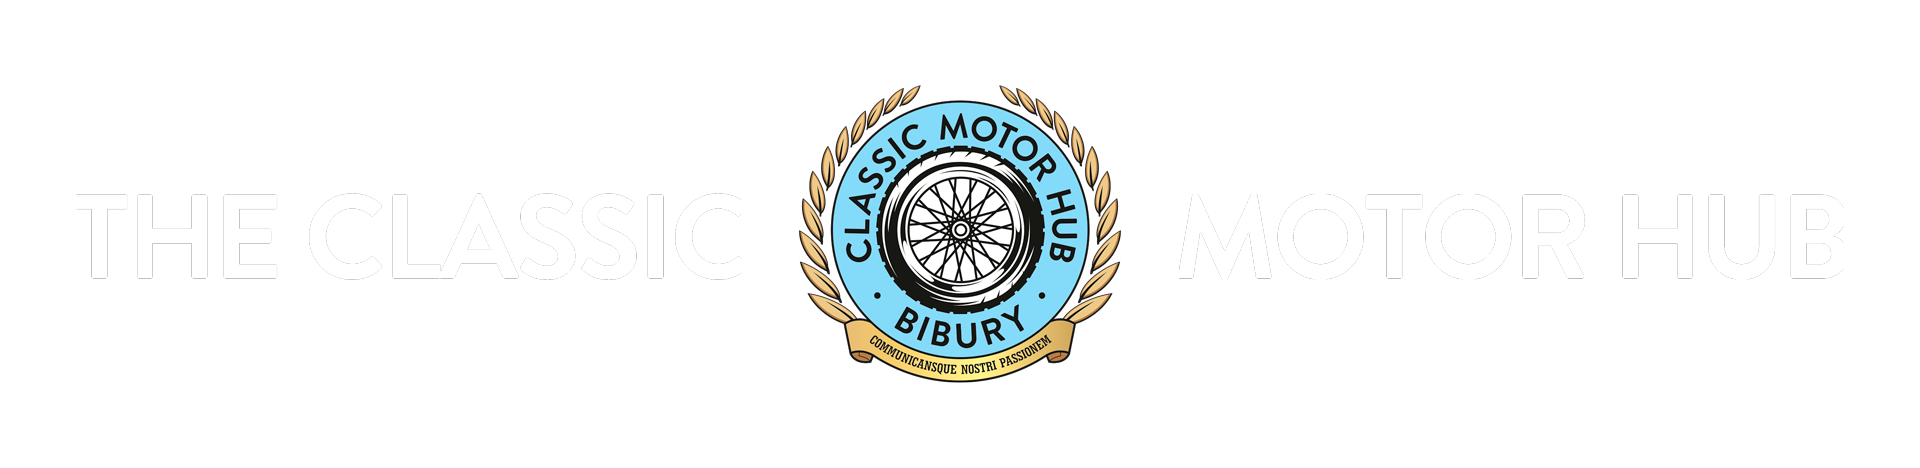 classic-motor-hub-banner-white-on-transparent.png